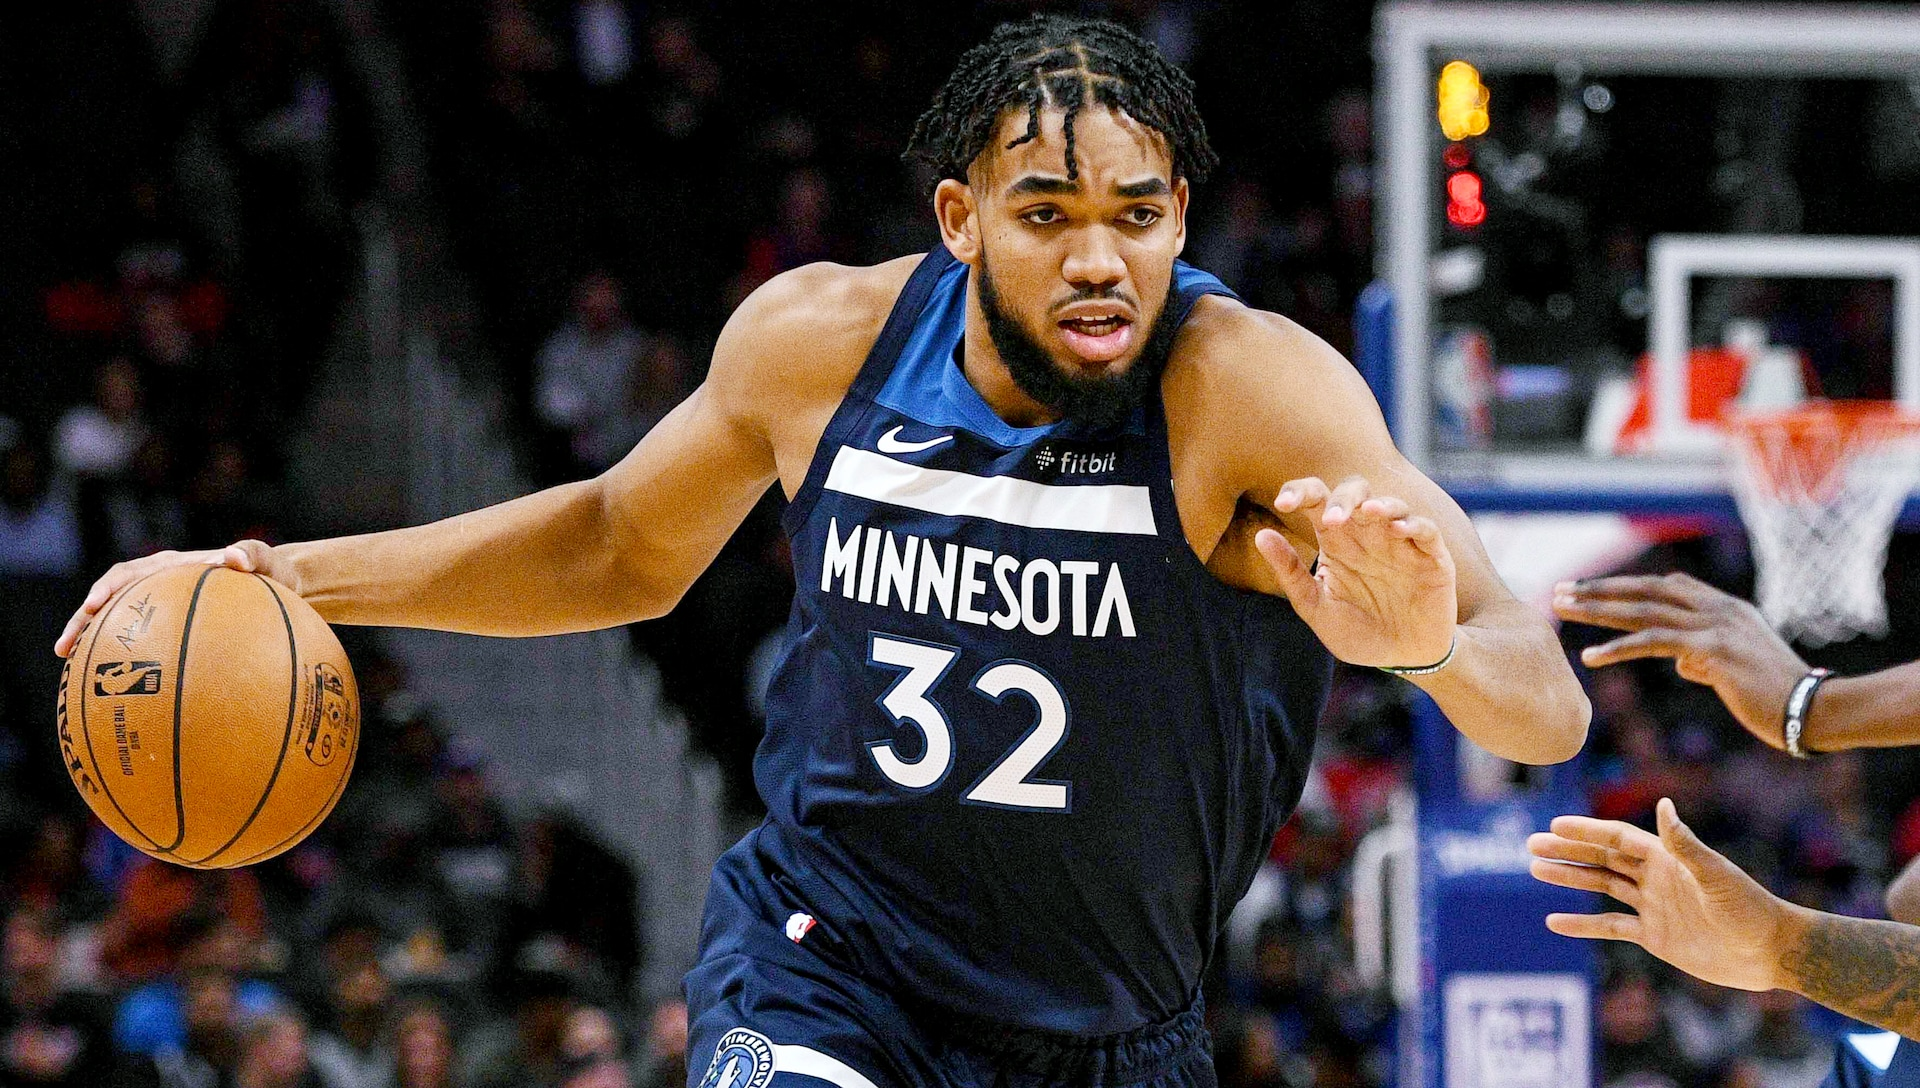 Karl-Anthony Towns returns to Timberwolves lineup after 15 games out